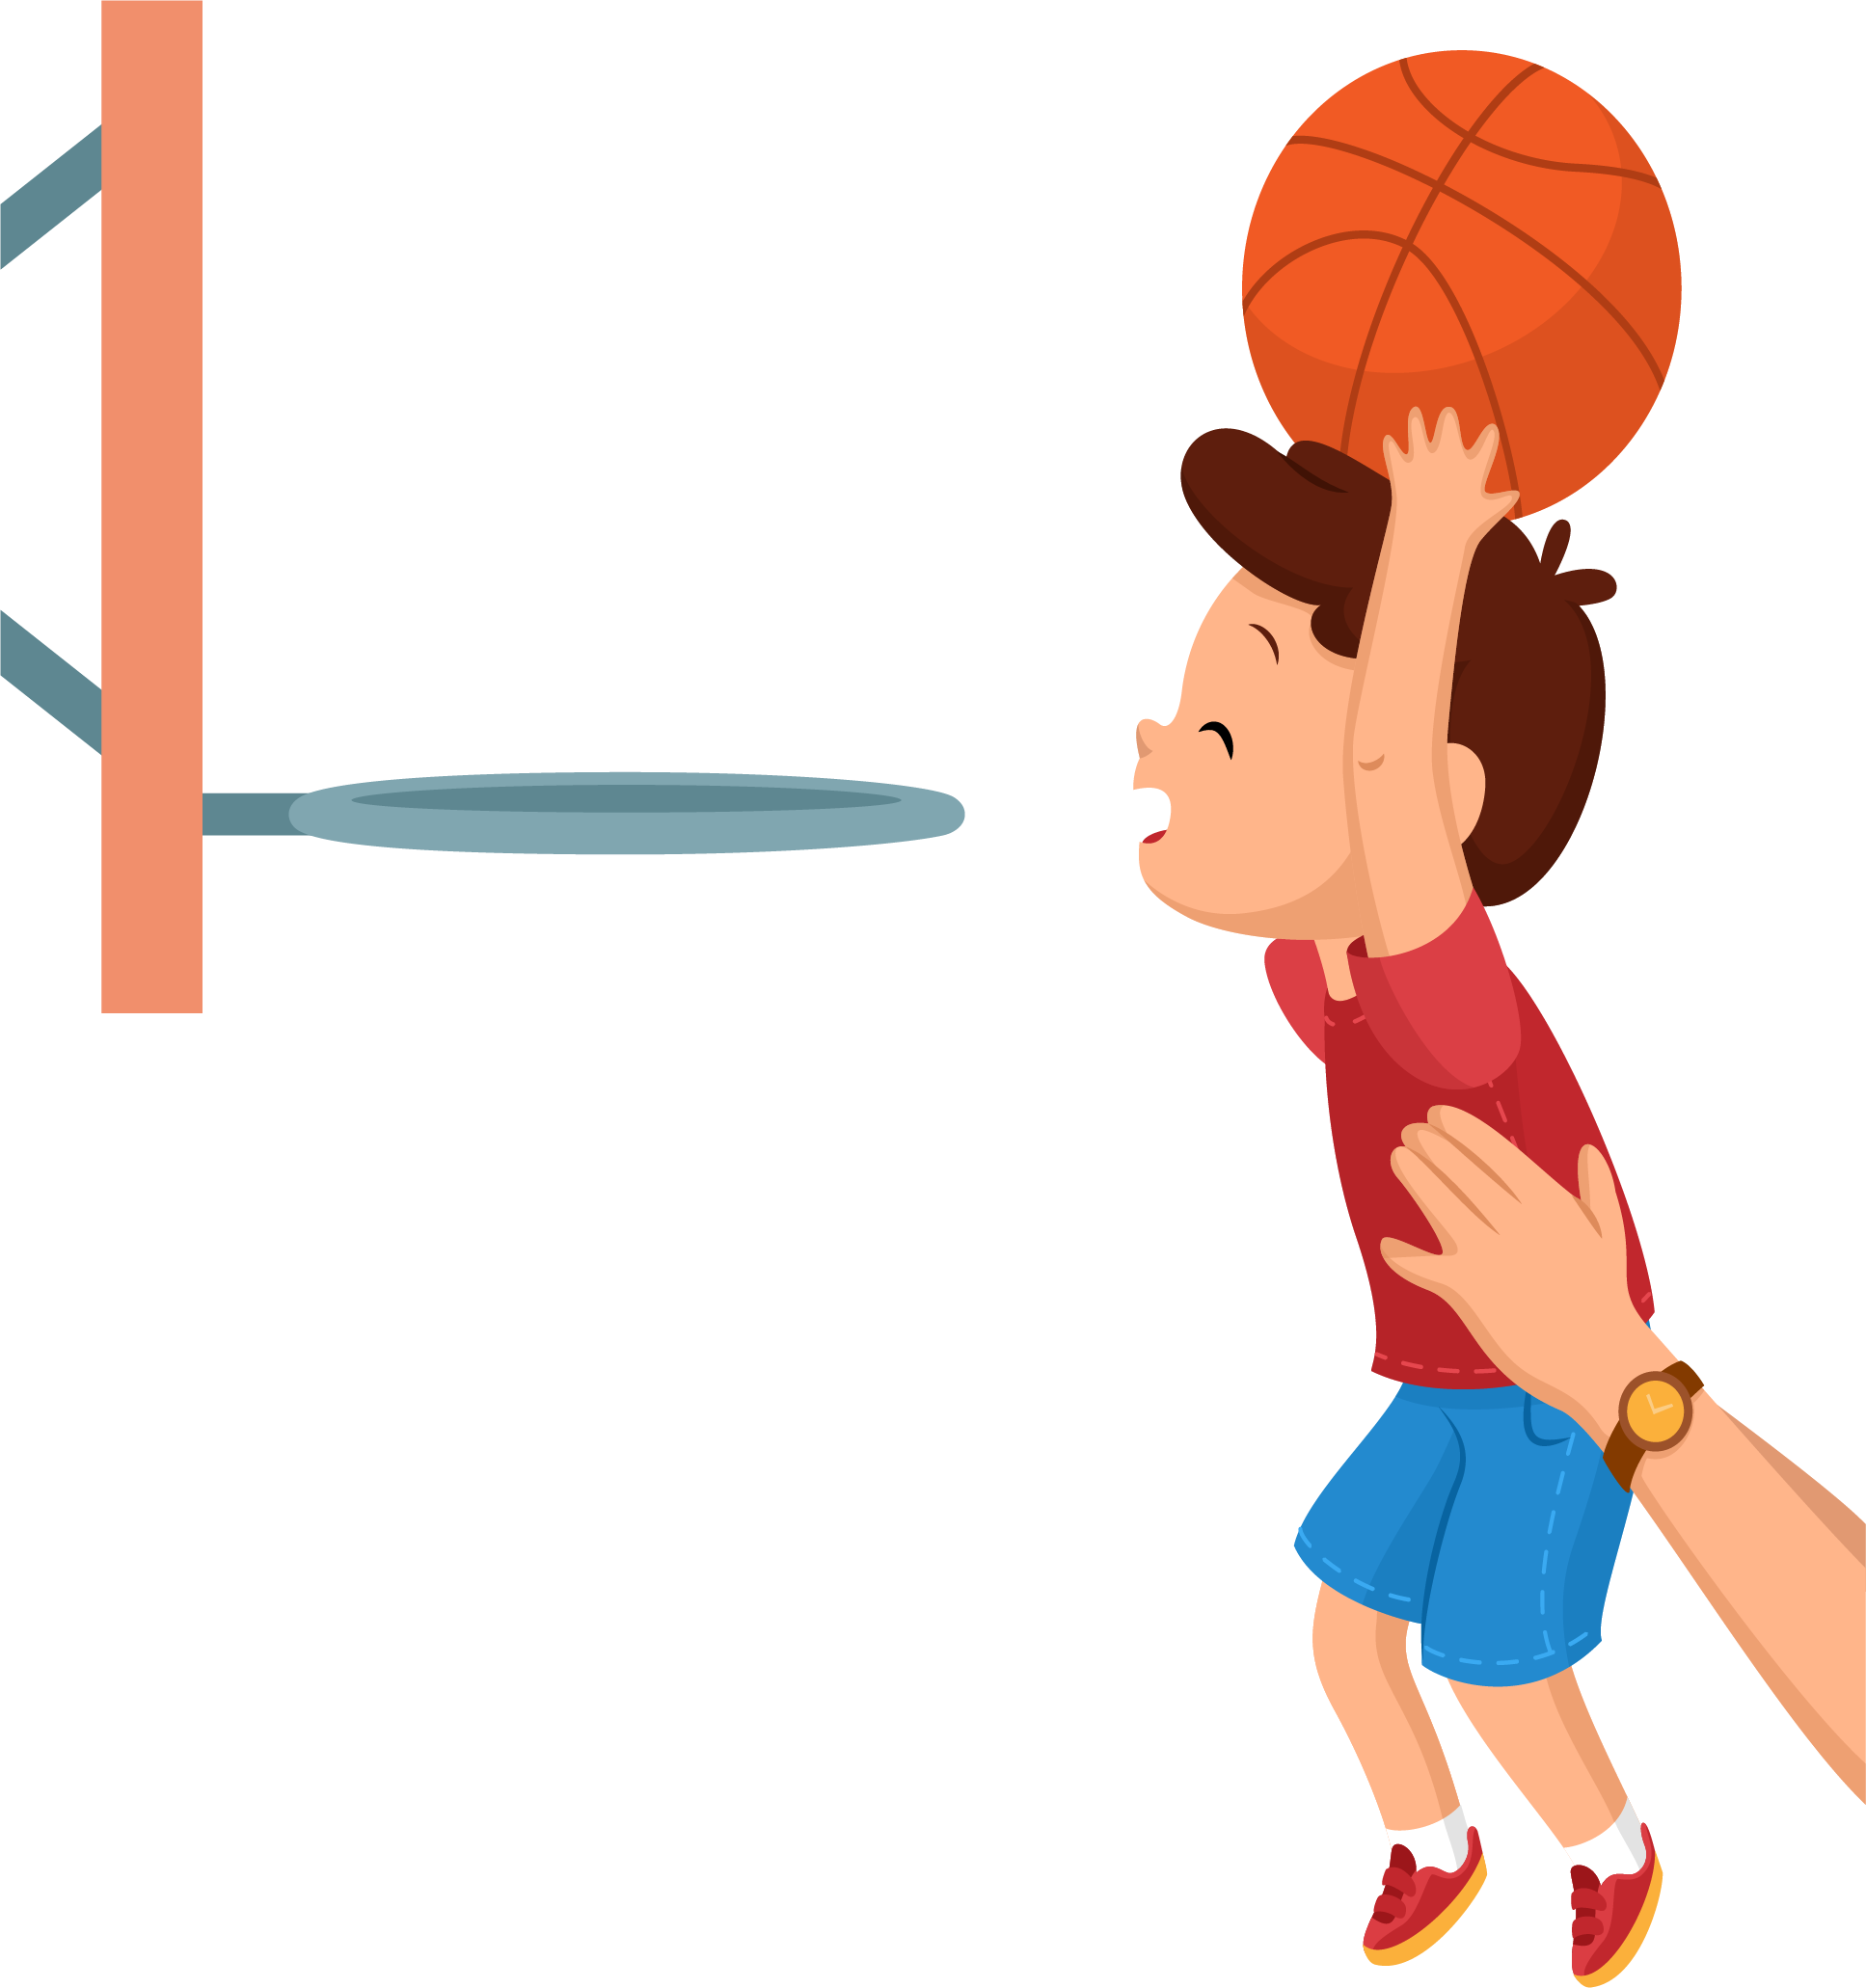 Cartoon boy with basketball clipart vector free download Basketball Backboard Clip art - Start learning basketball from the ... vector free download